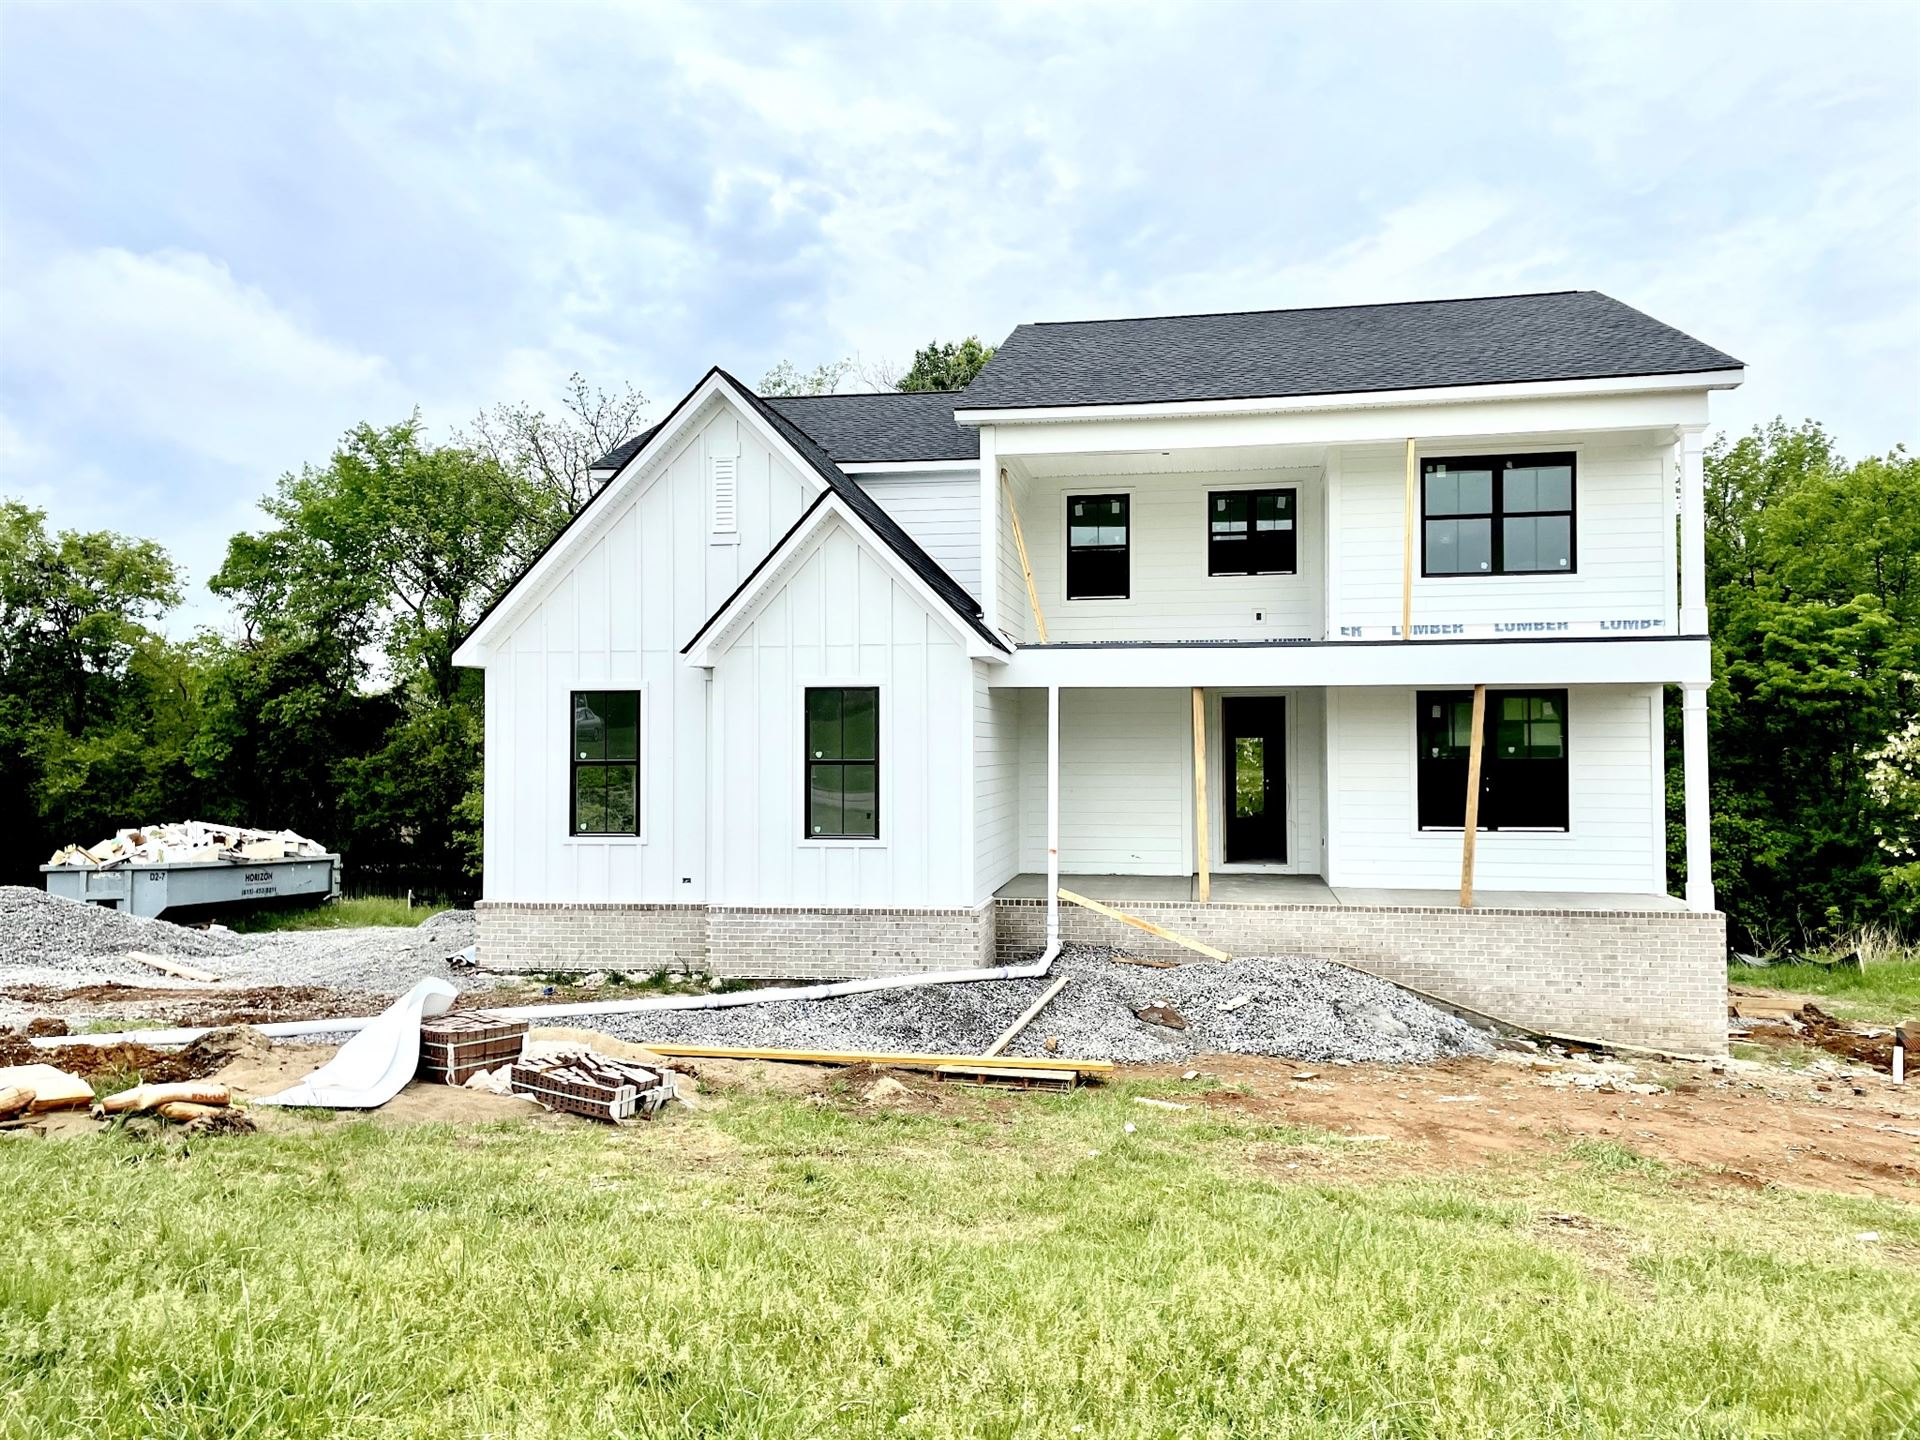 526 Cherry Blossom Way, Lebanon, TN 37087 - MLS#: 2231921